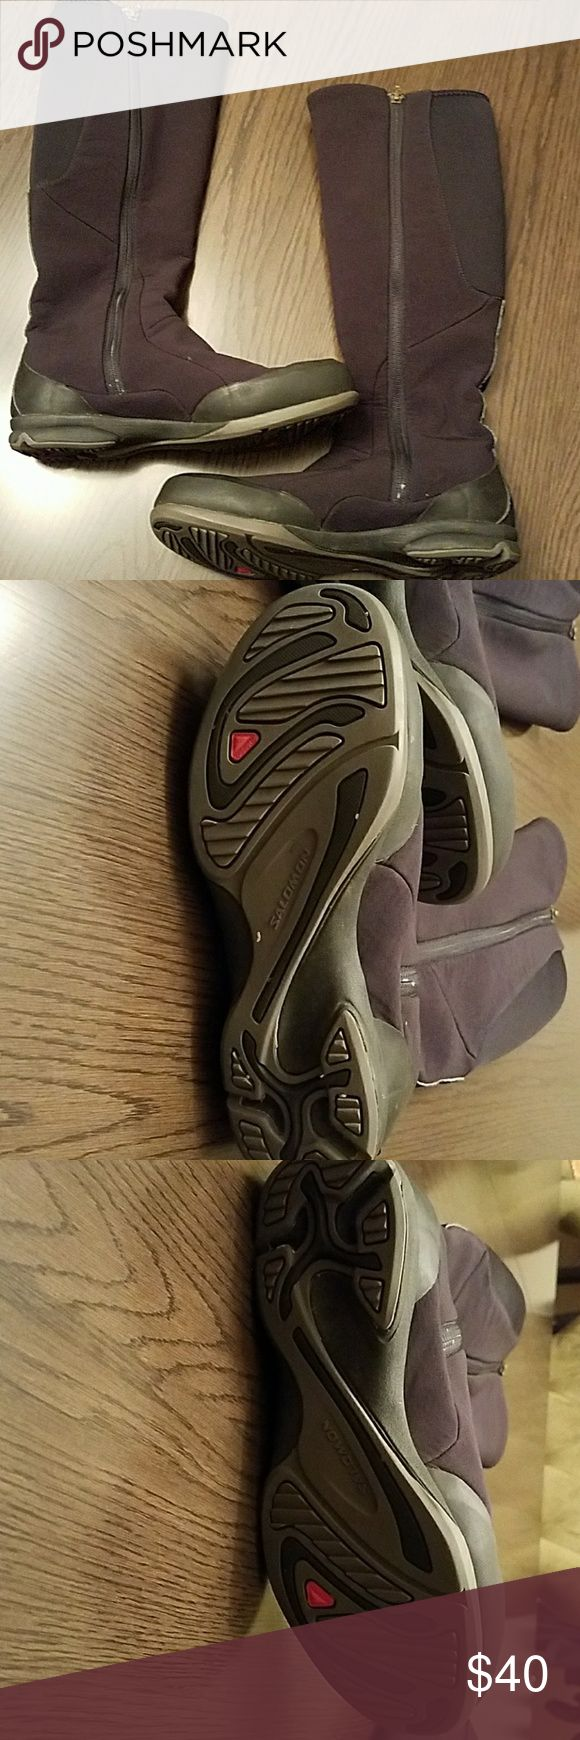 """Winter boots by Salomon Thinsulate to keep your feet warm and dry.  16"""" bottom of heel to top of shaft. Worn one season then sat in my closet. Bundle discount. Offers welcome. I ship within 24 hours! Salomon Shoes Winter & Rain Boots"""